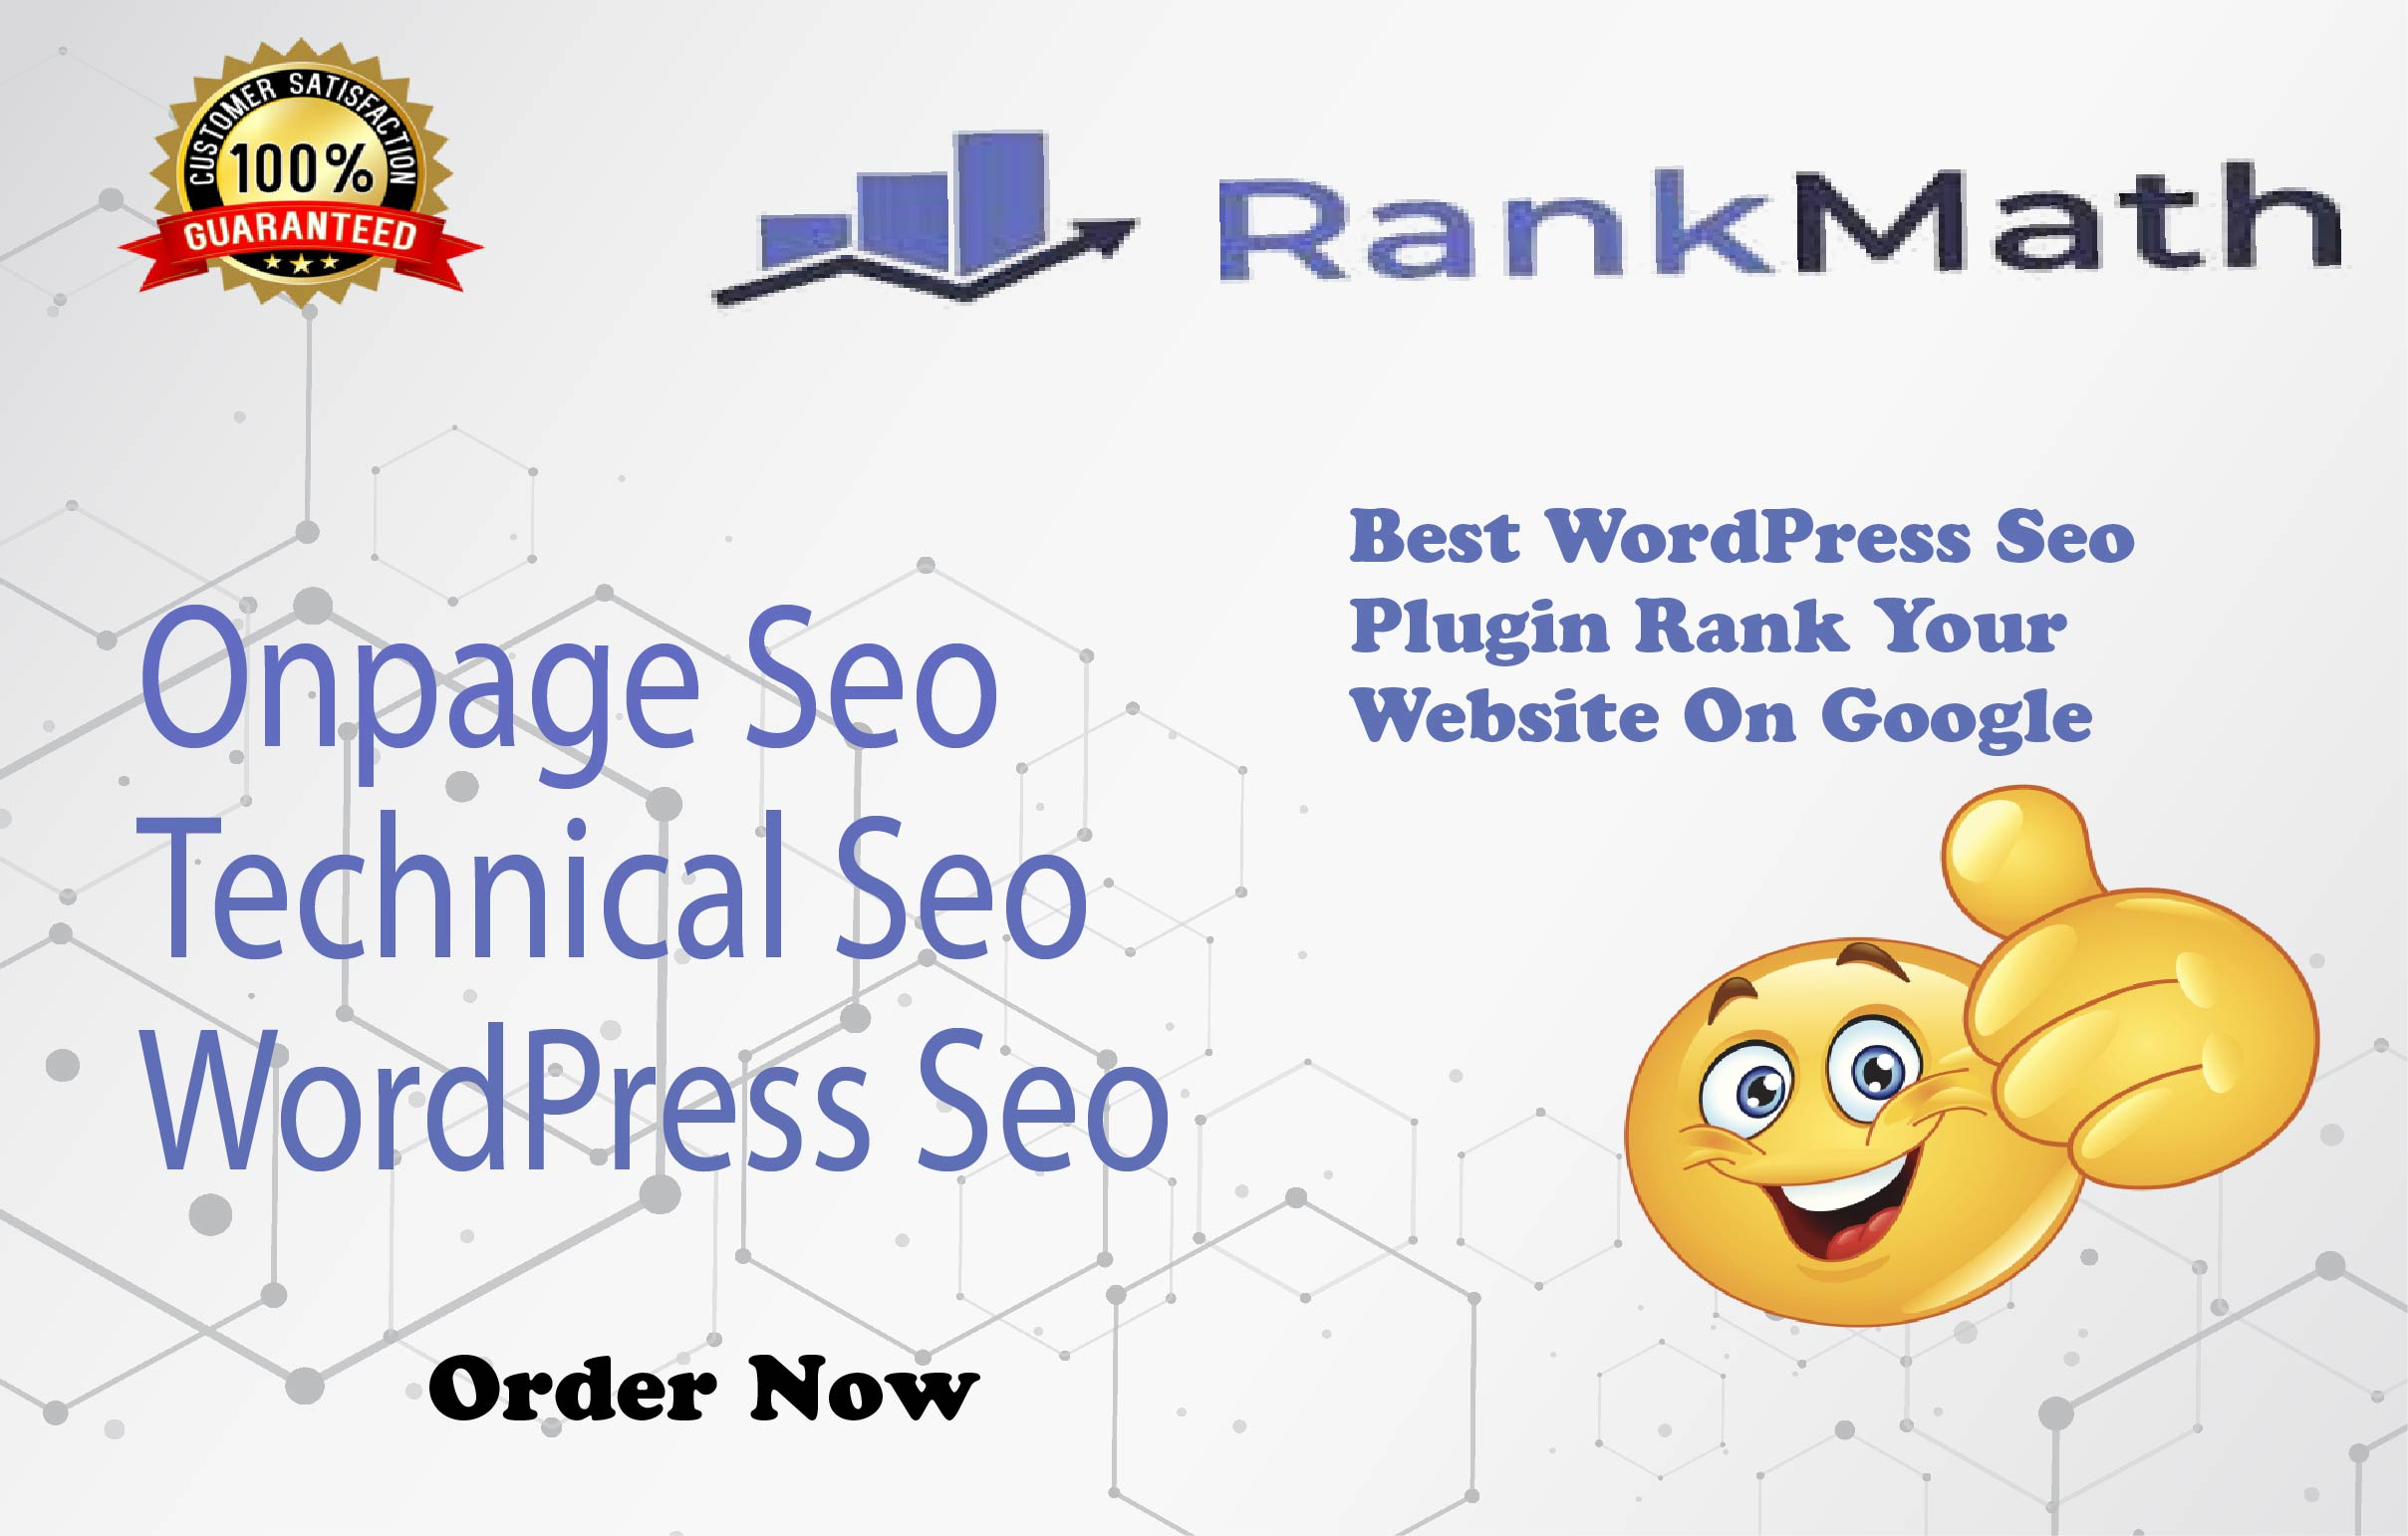 I will do complete wordpress on page SEO with rank math